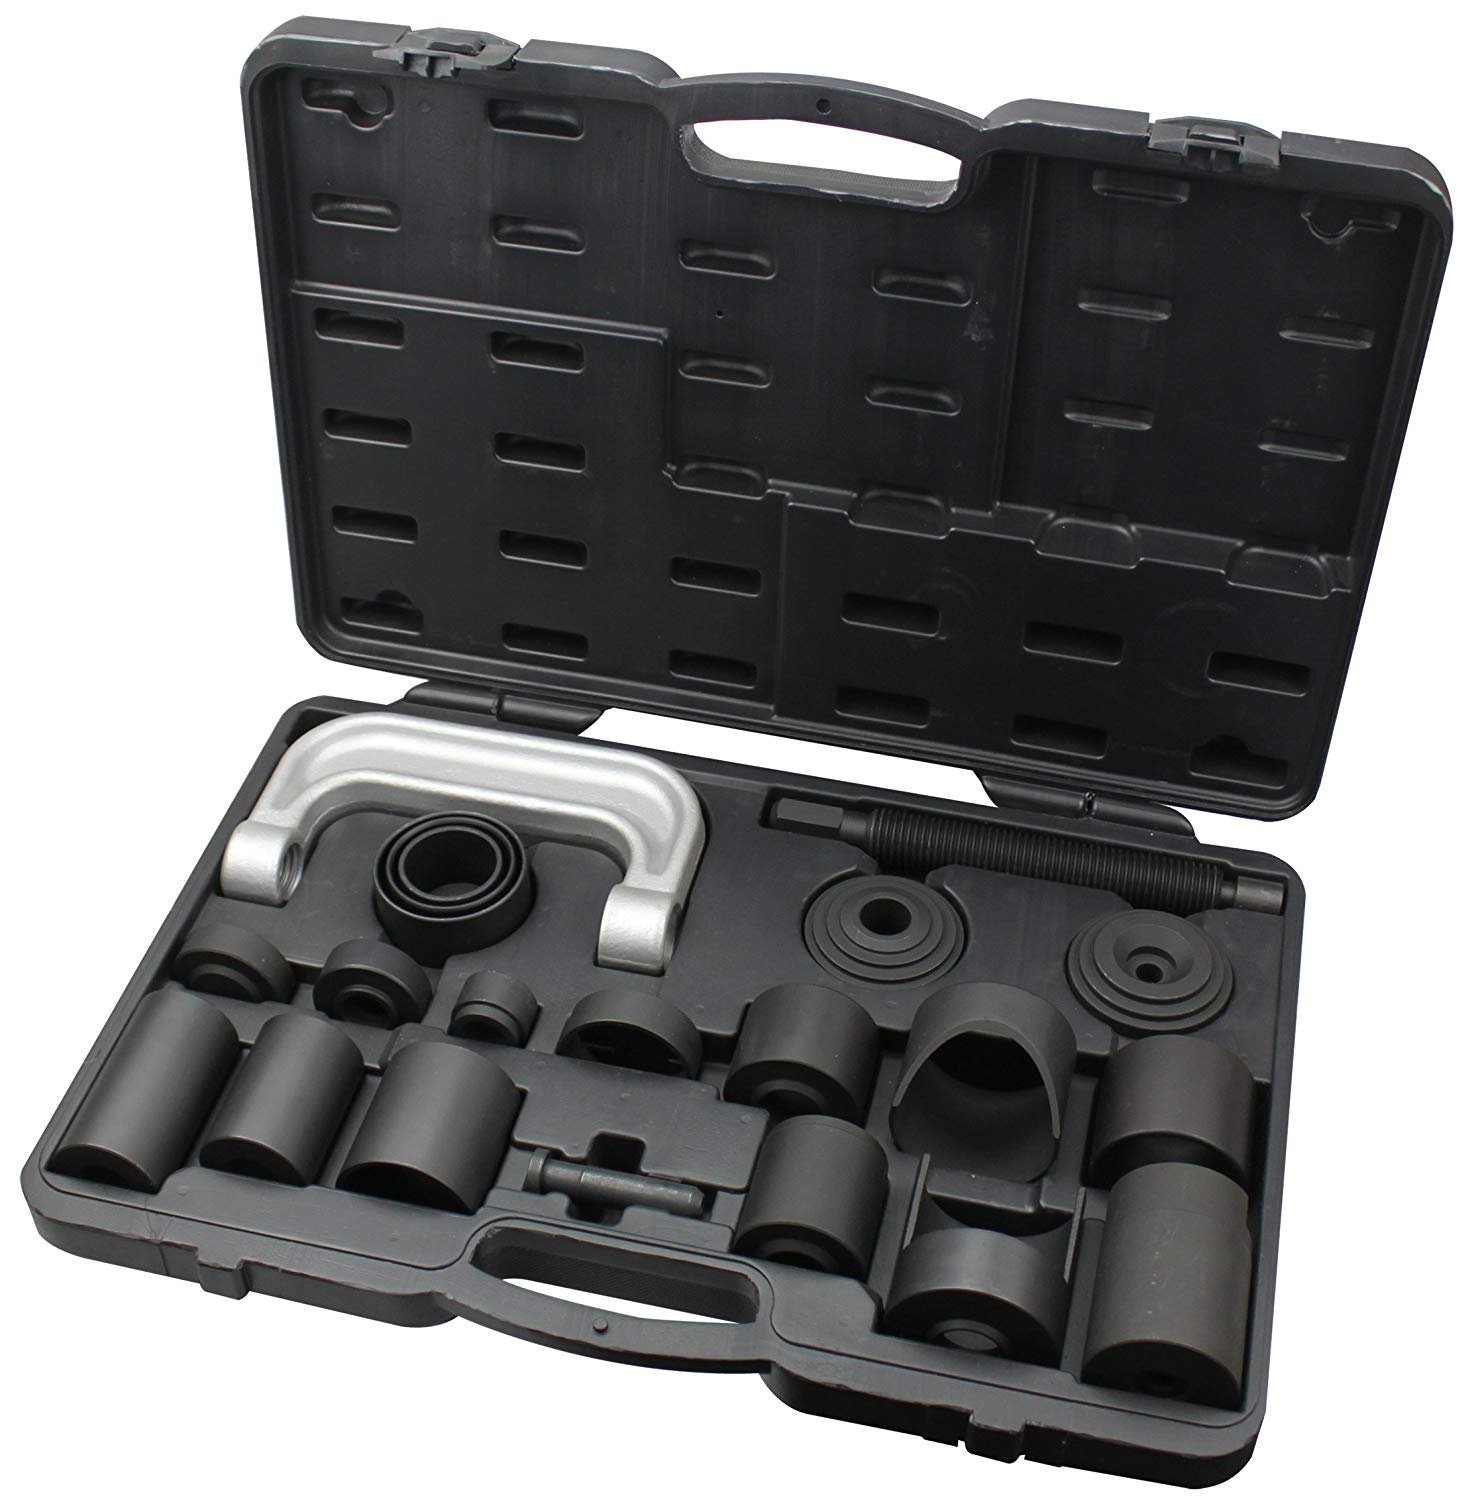 Kauplus Master Ball Joint / U-Joint Service Tool Set - 21 Piece Ball Joint, U-Joint and Brake Anchor Pin Service Kit